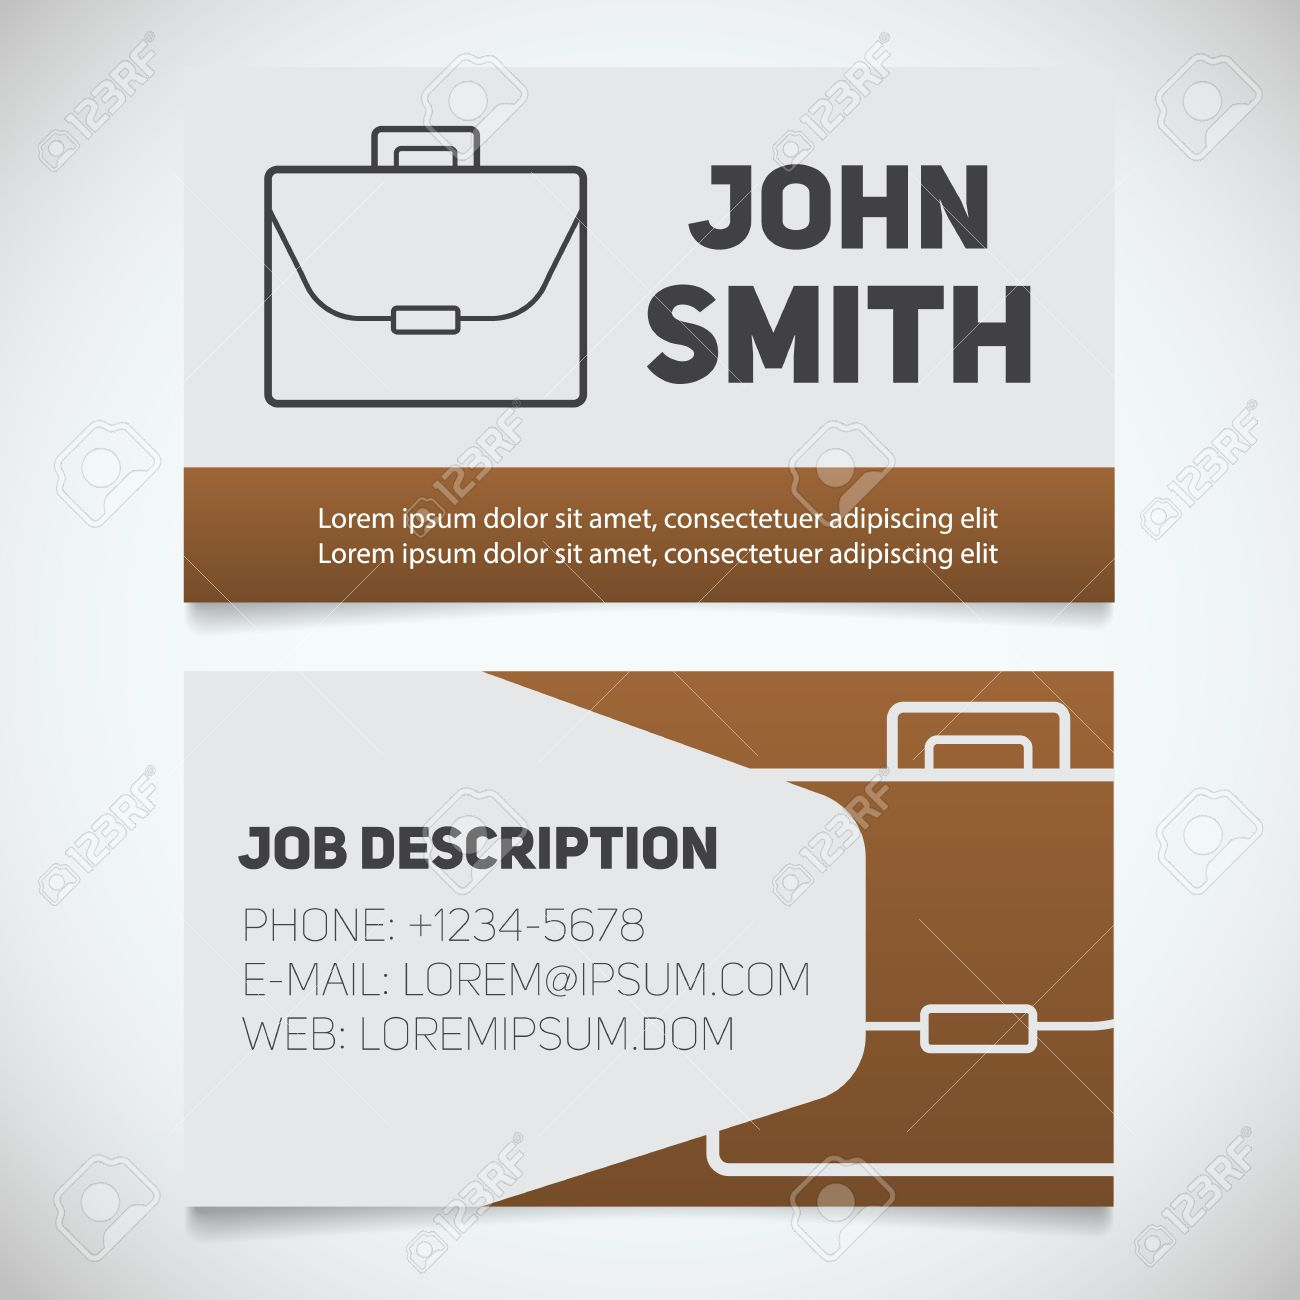 Business card print template with briefcase logo easy edit business card print template with briefcase logo easy edit manager work management flashek Images